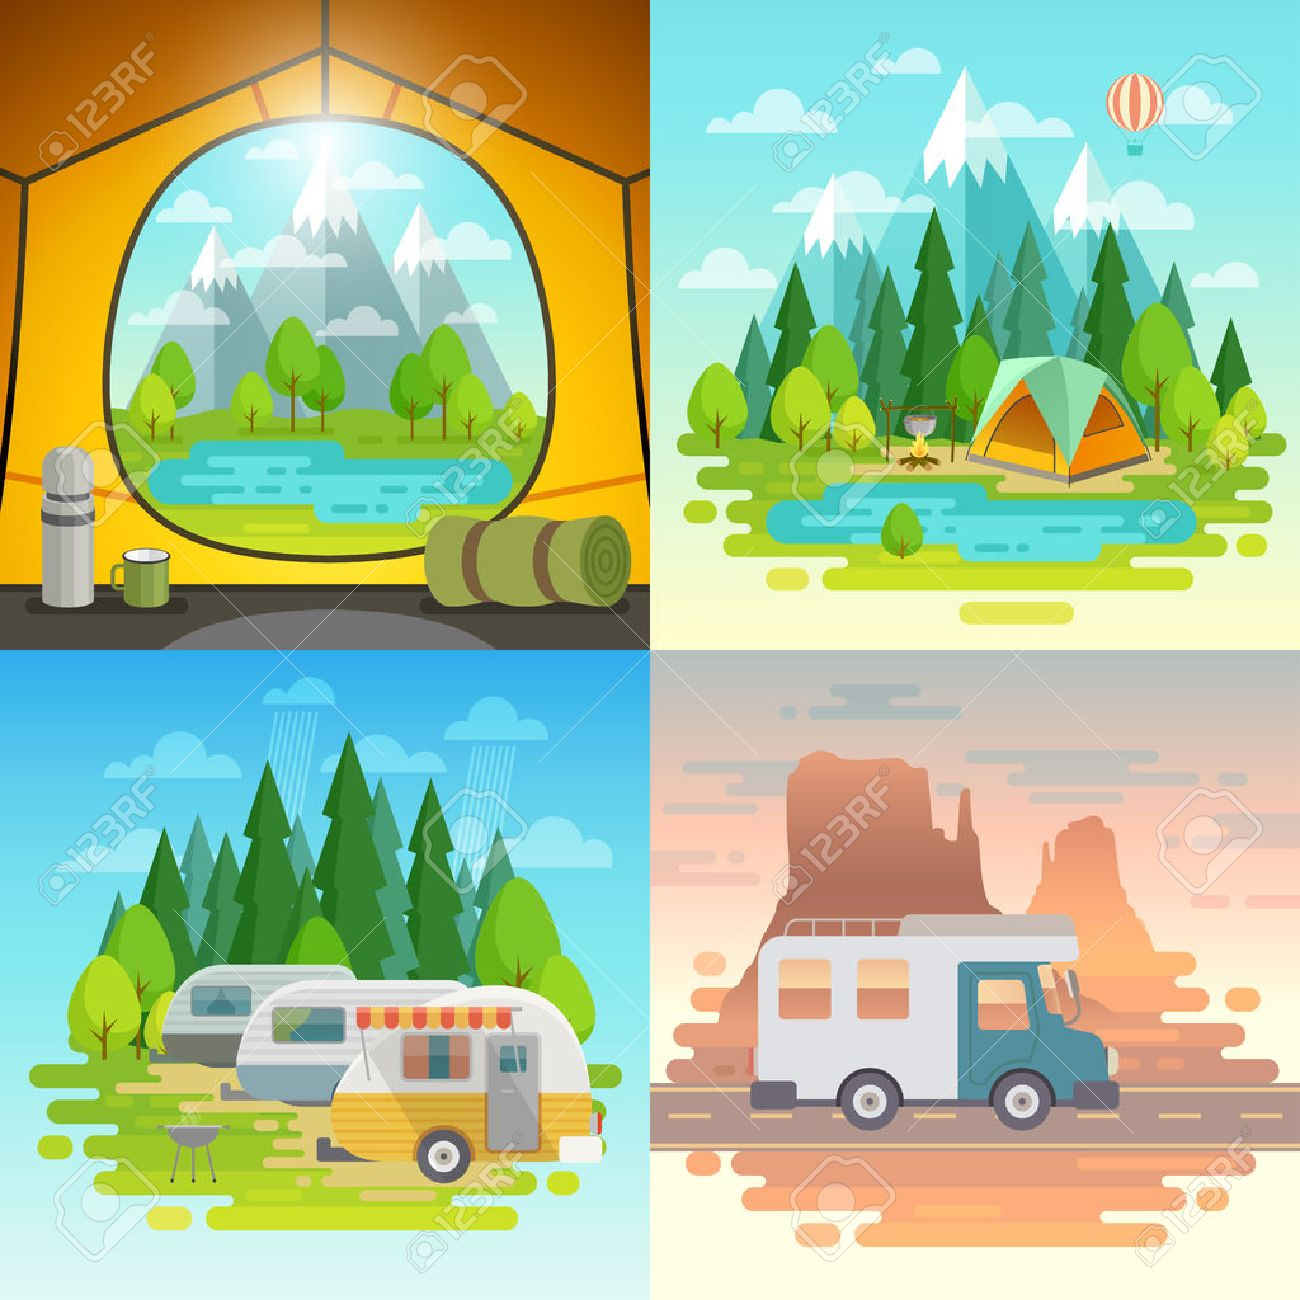 Camping concept, tent, caravan, house on weels. Vector illustration. Foto de archivo - 73619939